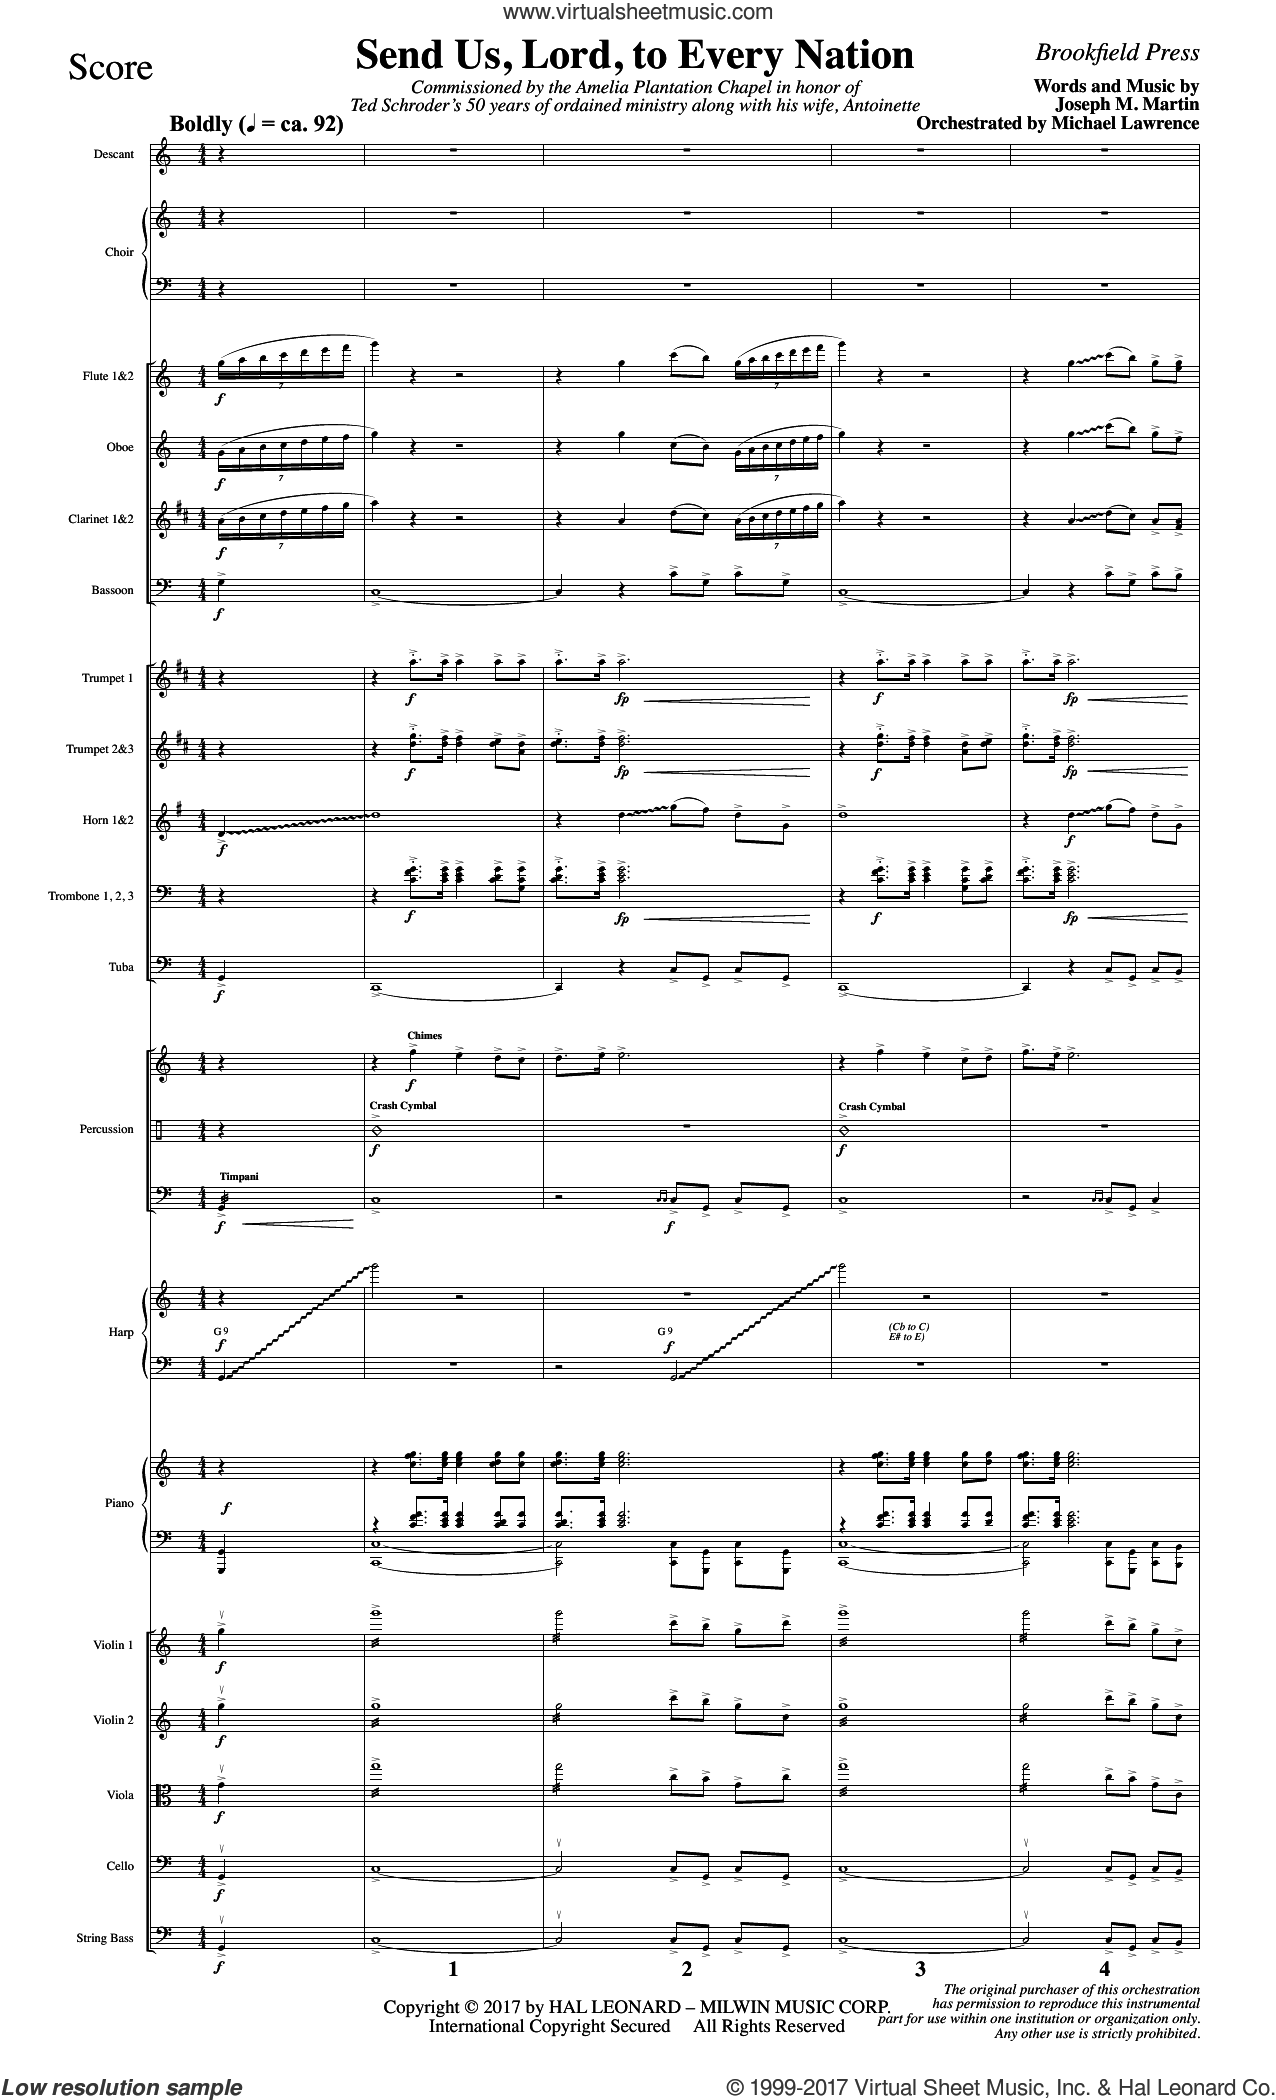 Send Us, Lord, to Every Nation (COMPLETE) sheet music for orchestra/band by Joseph M. Martin, intermediate skill level